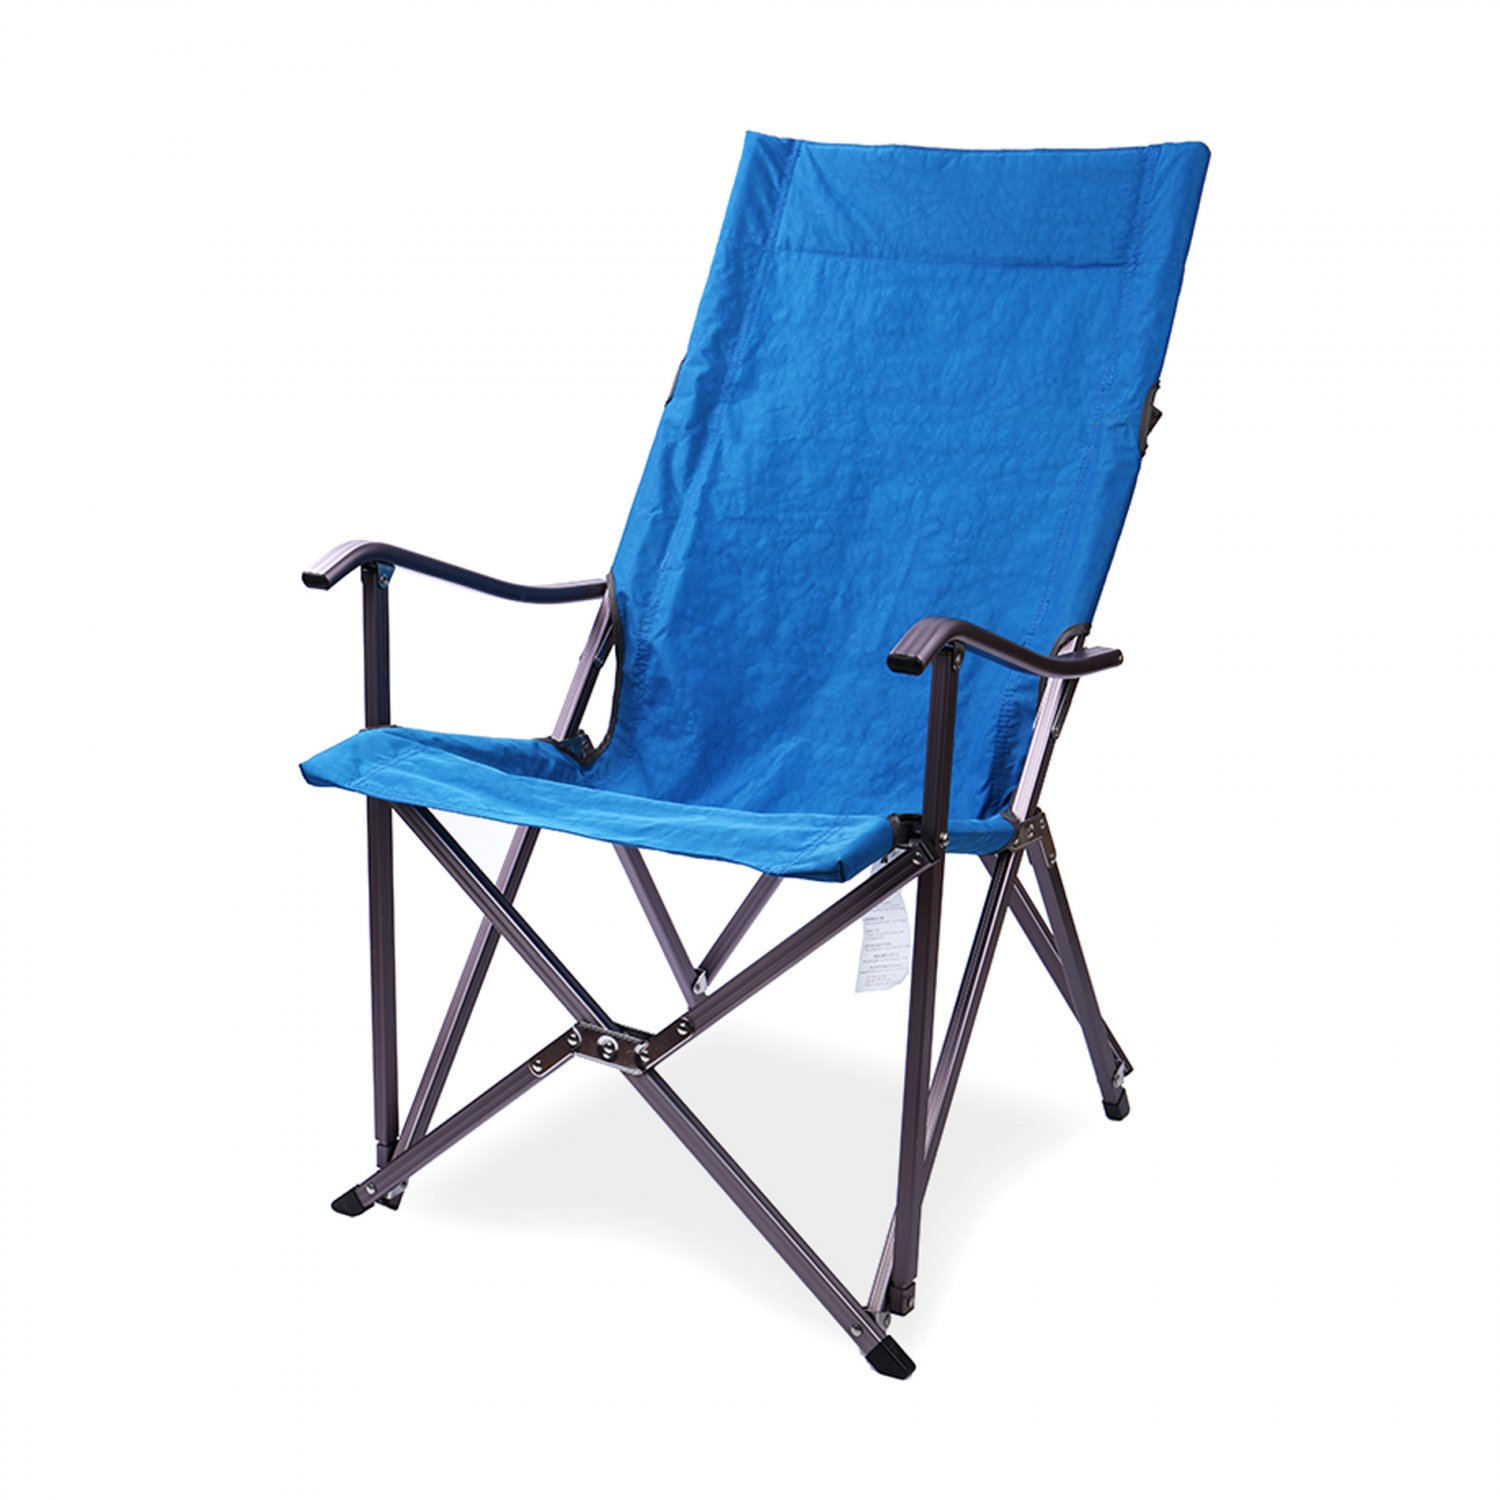 Lightweight Portable Folding Relax Chair Camping Seat W Carry Bag Blue Ship